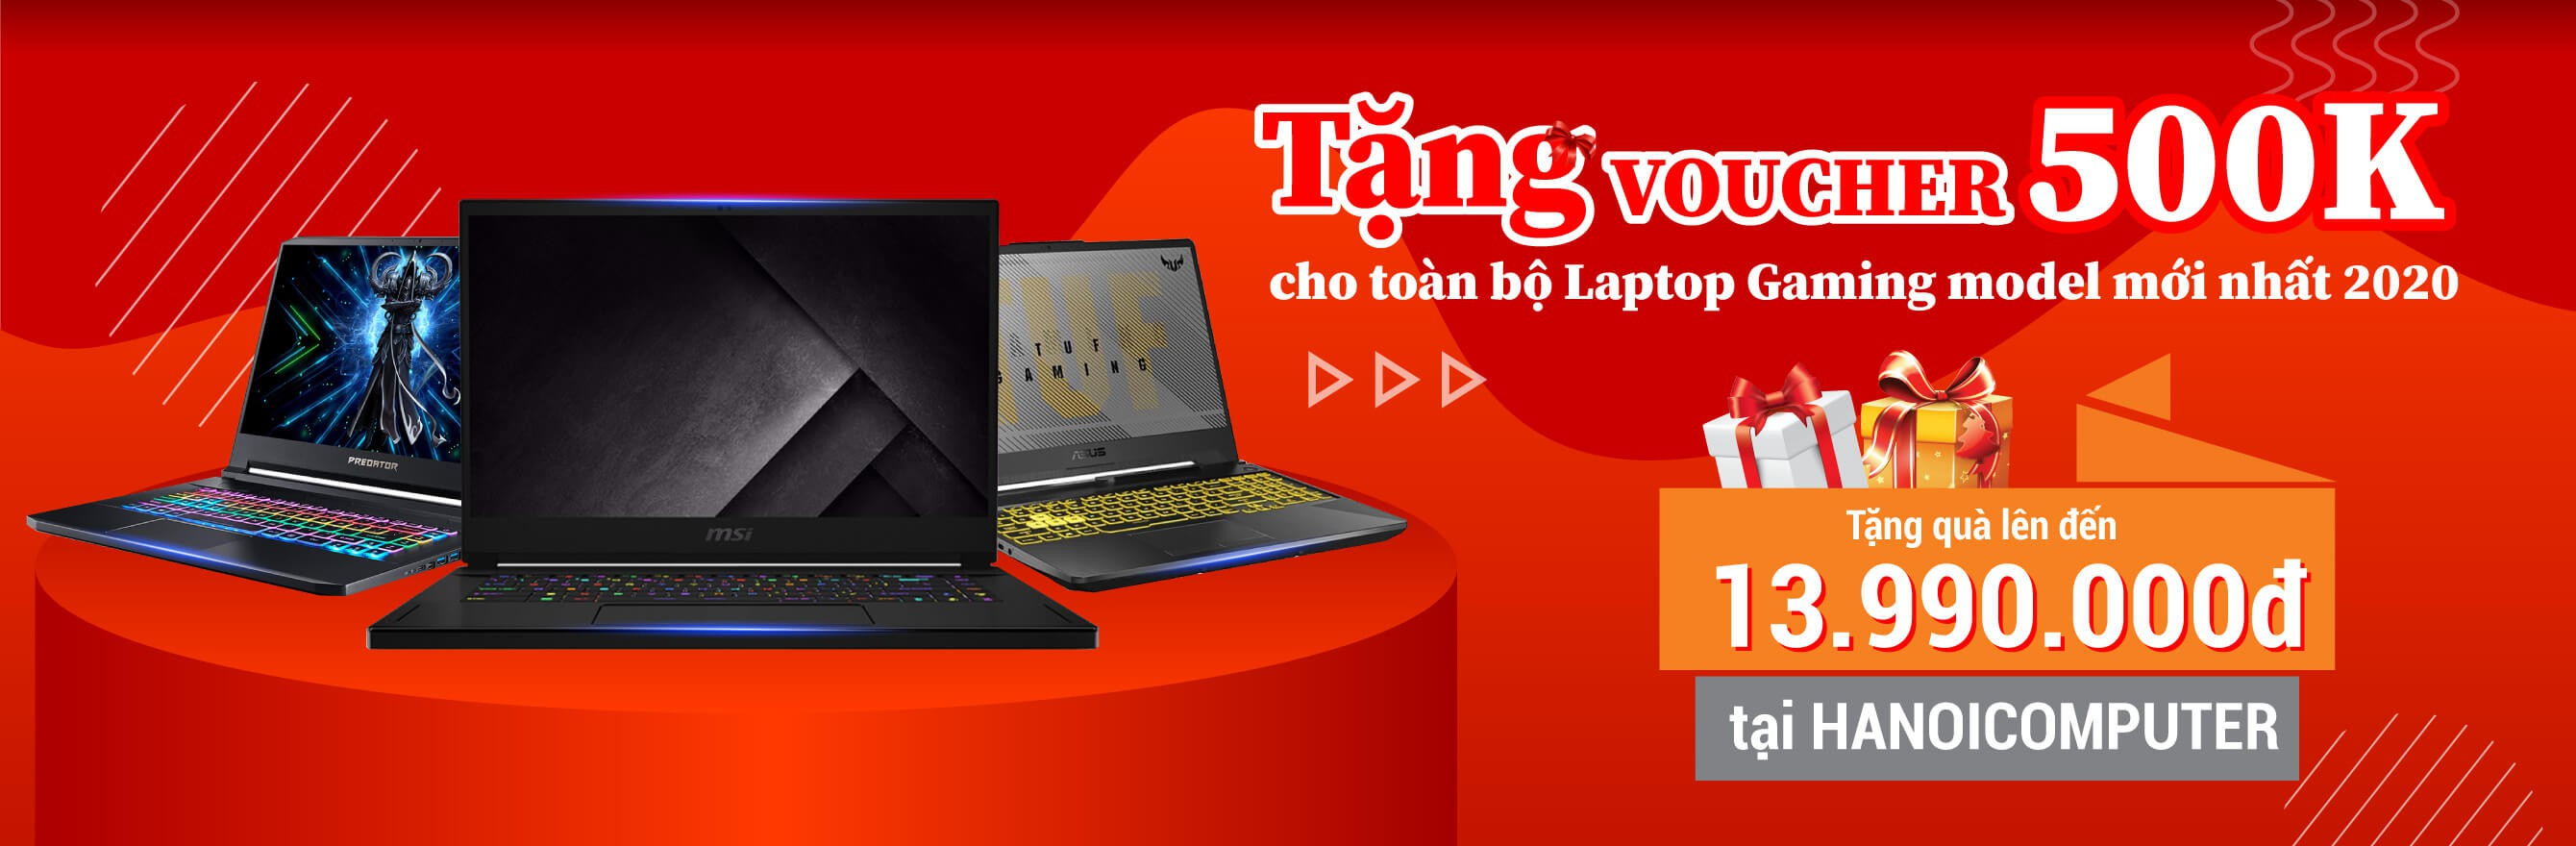 Voucher 500K Laptop Gaming